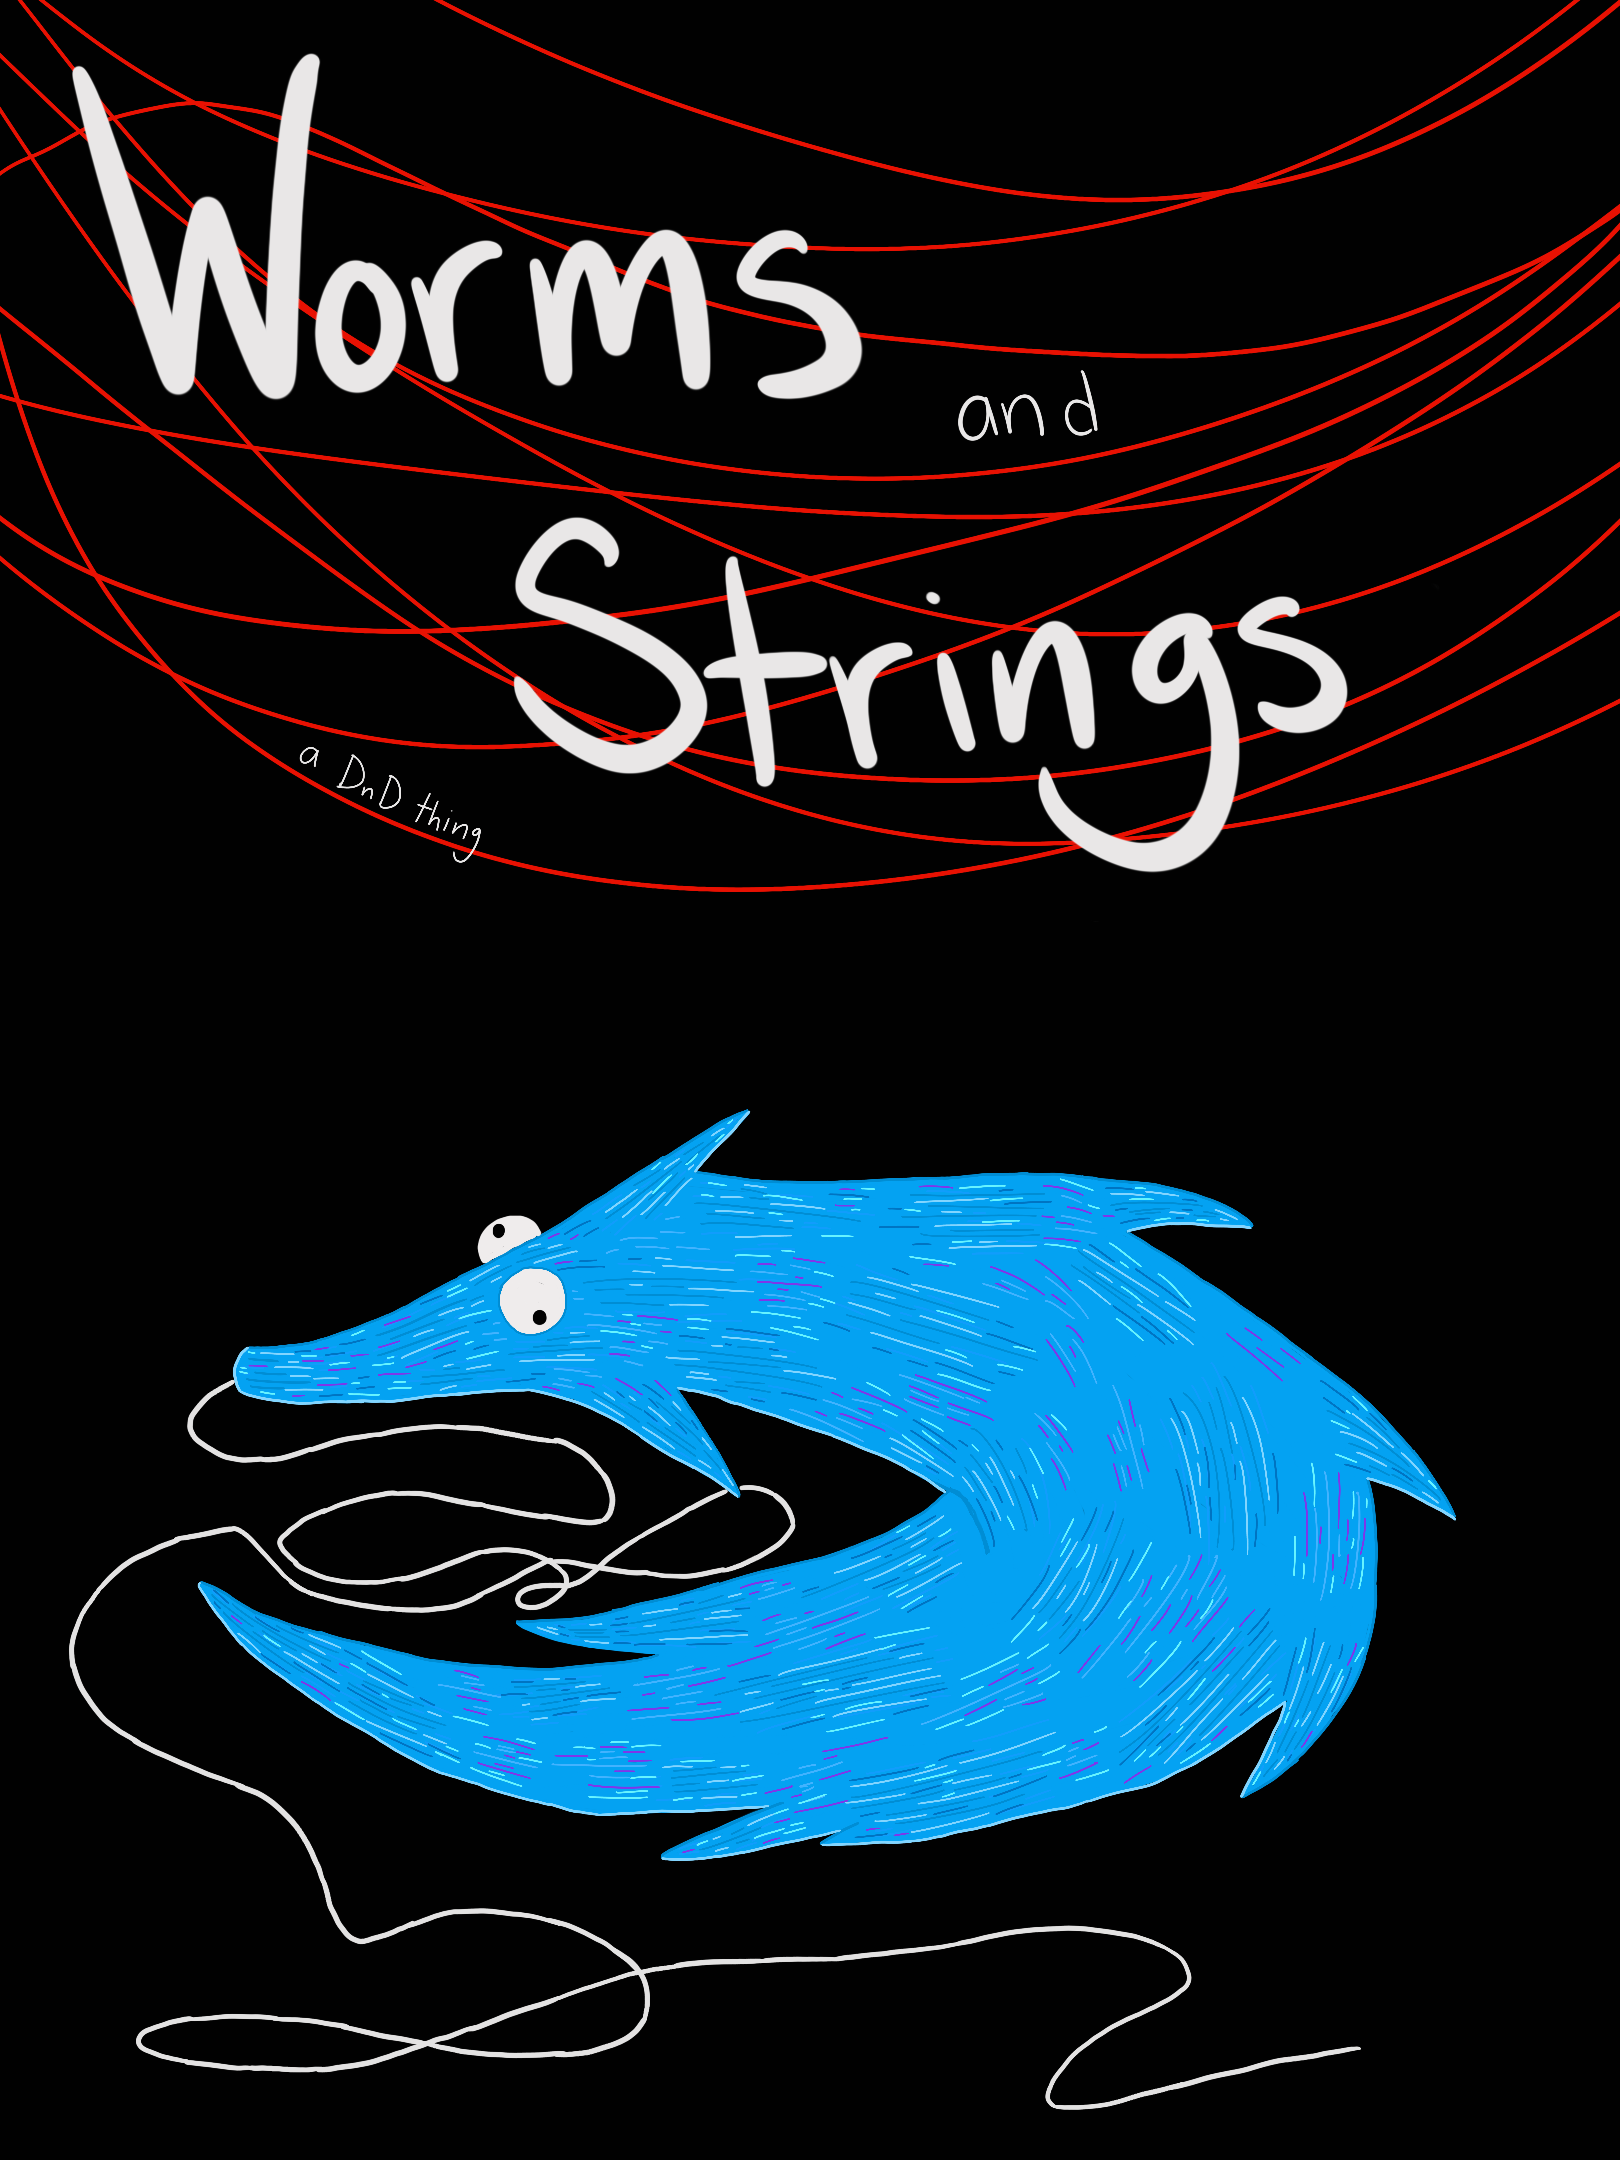 Worms & strings